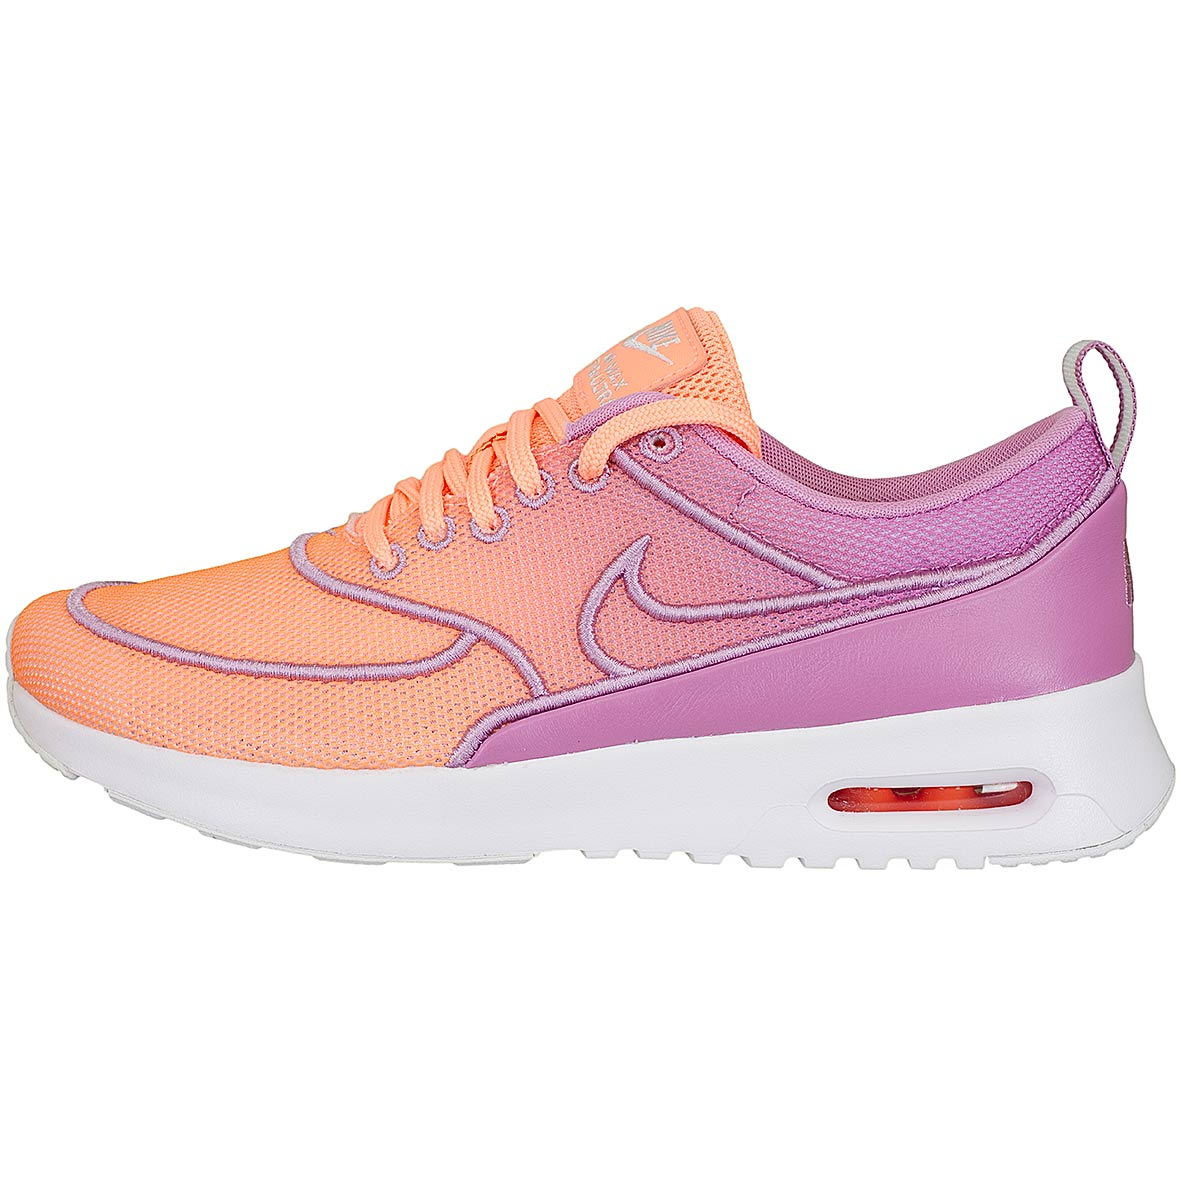 Nike Air Max Thea Ultra SI purple and orange sneaker